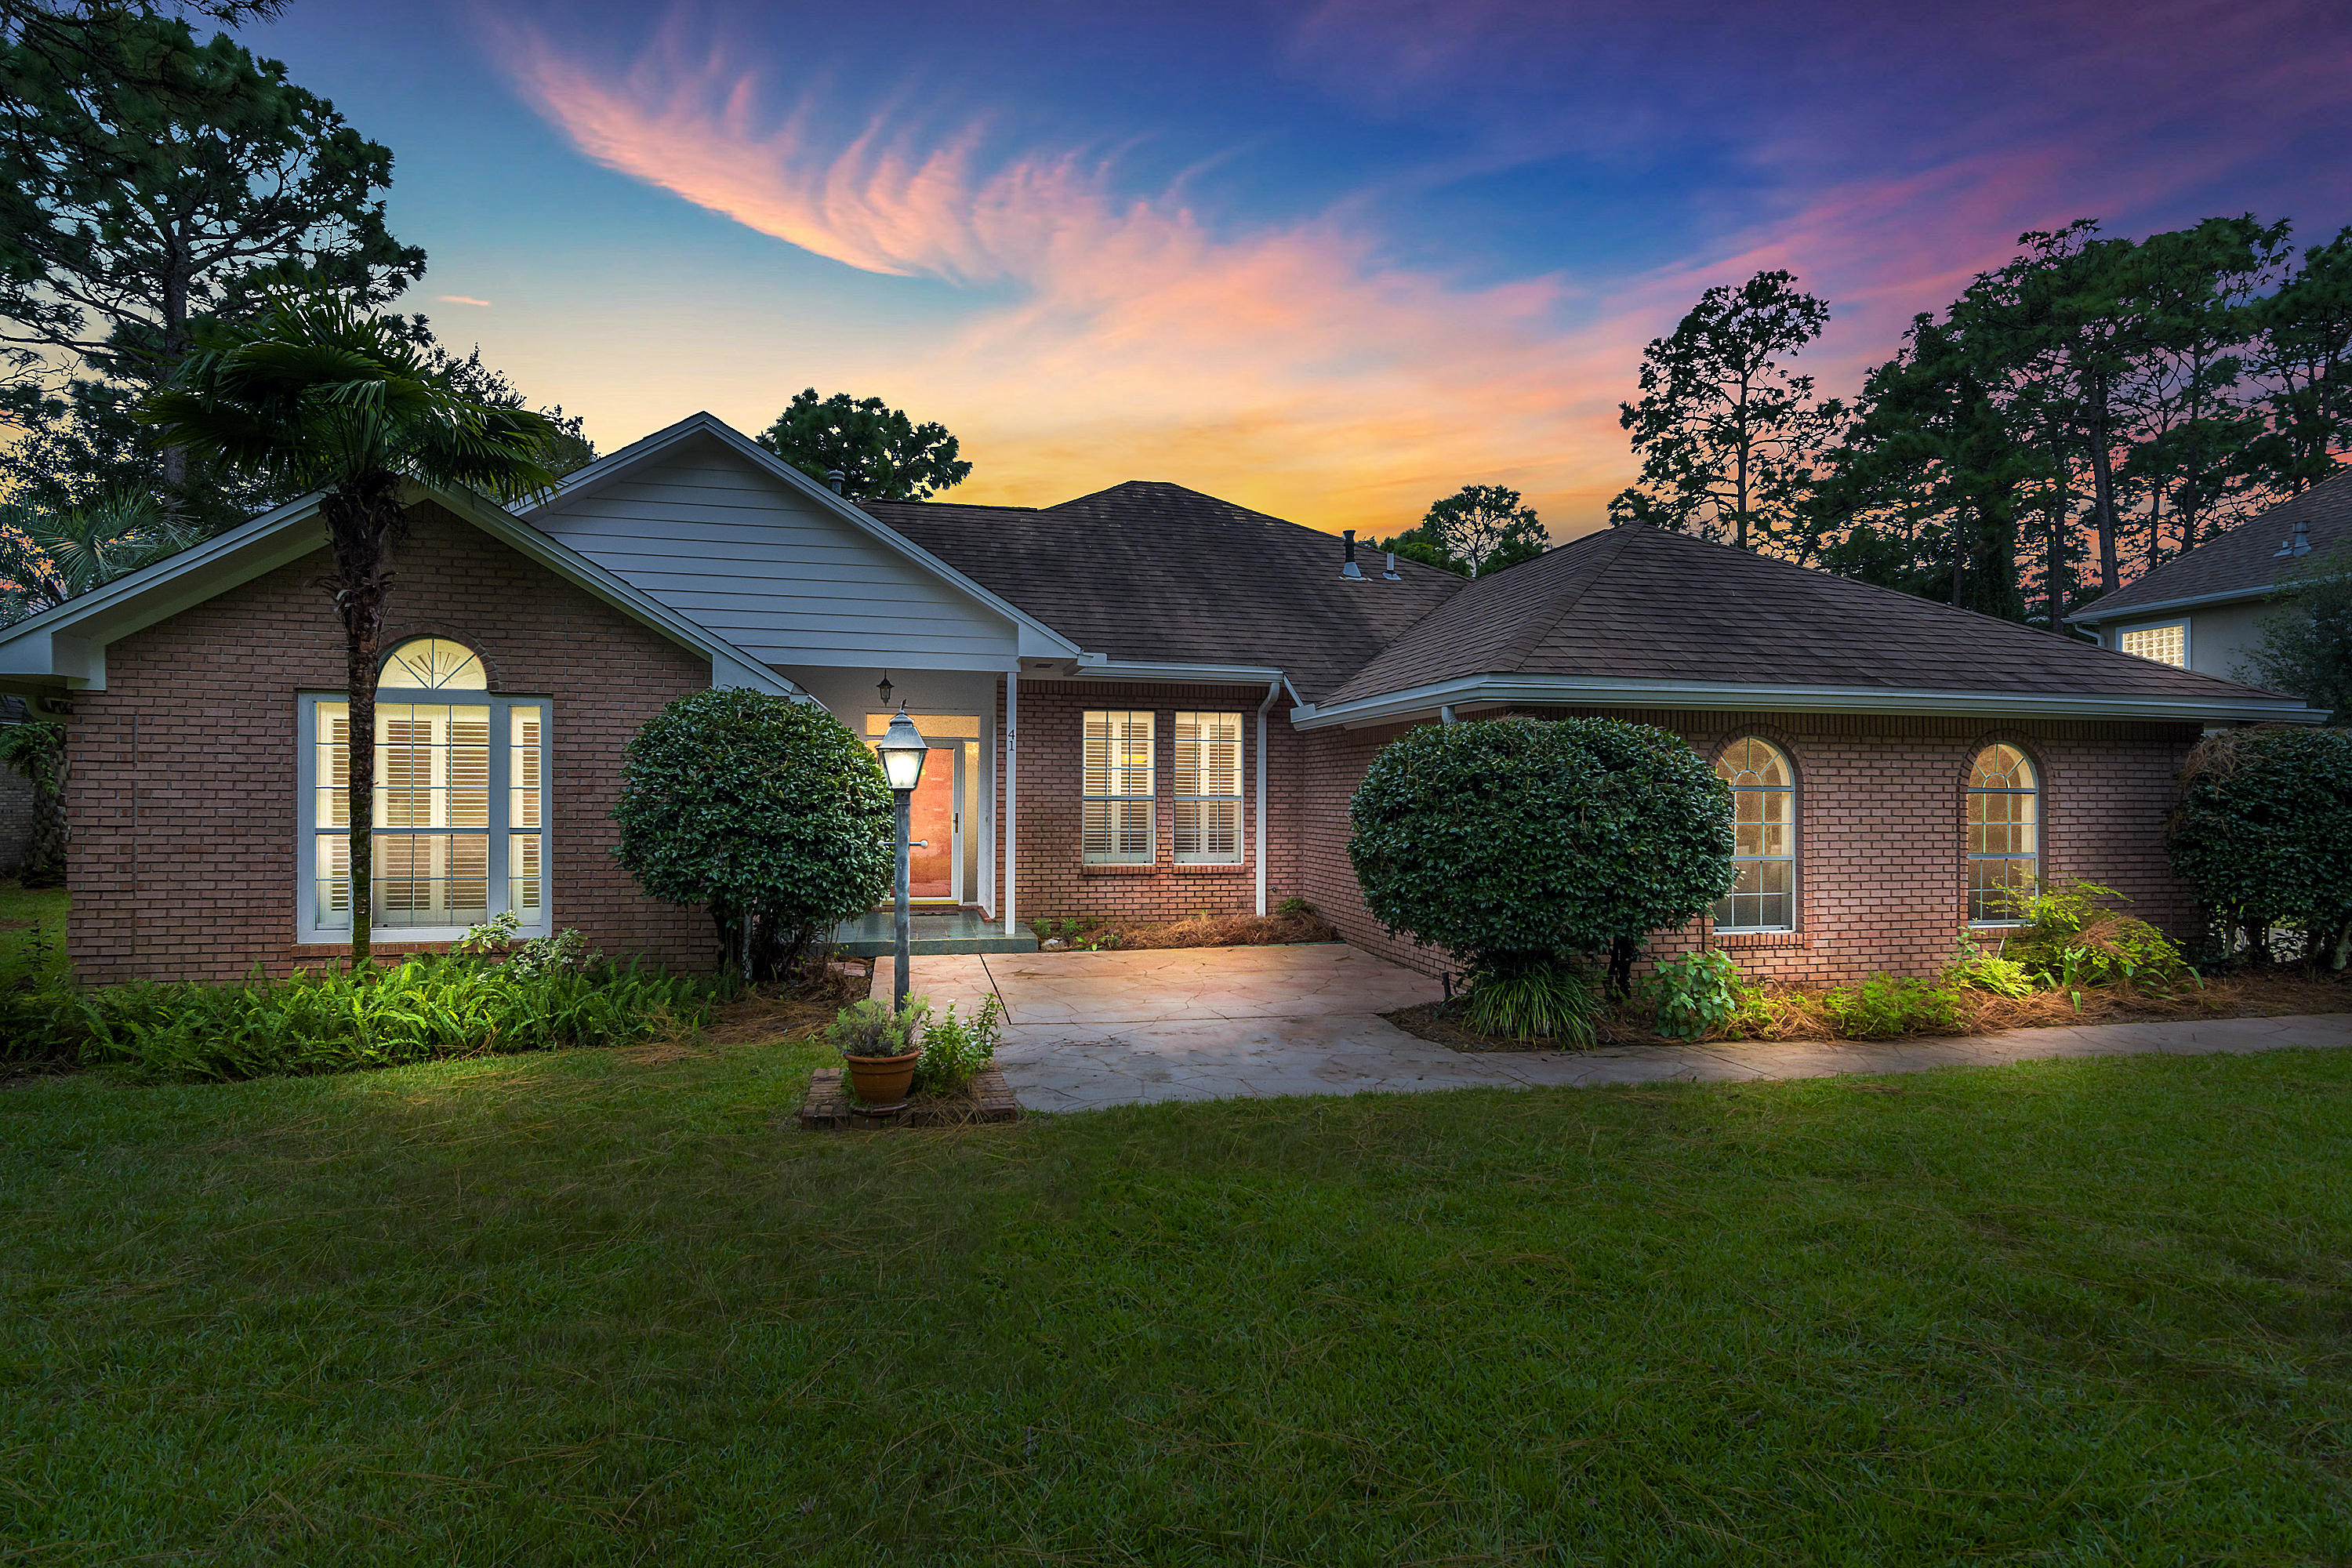 A 3 Bedroom 2 Bedroom Southwind Ph 4 Home